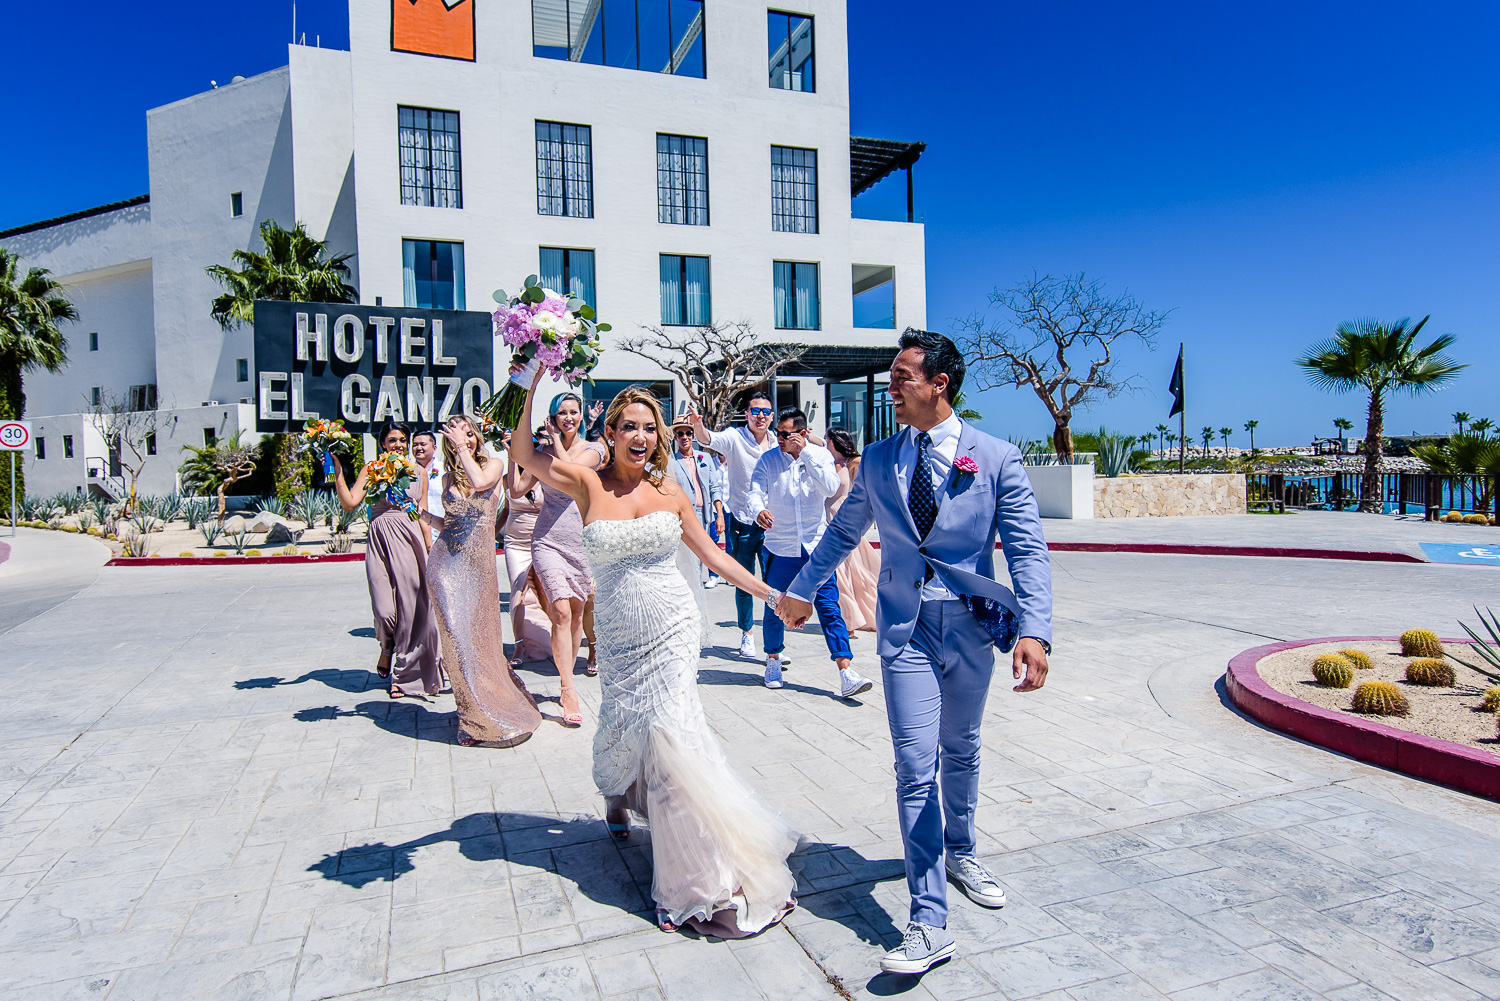 El-Ganzo-Hotel-wedding-in-Cabo.JPG